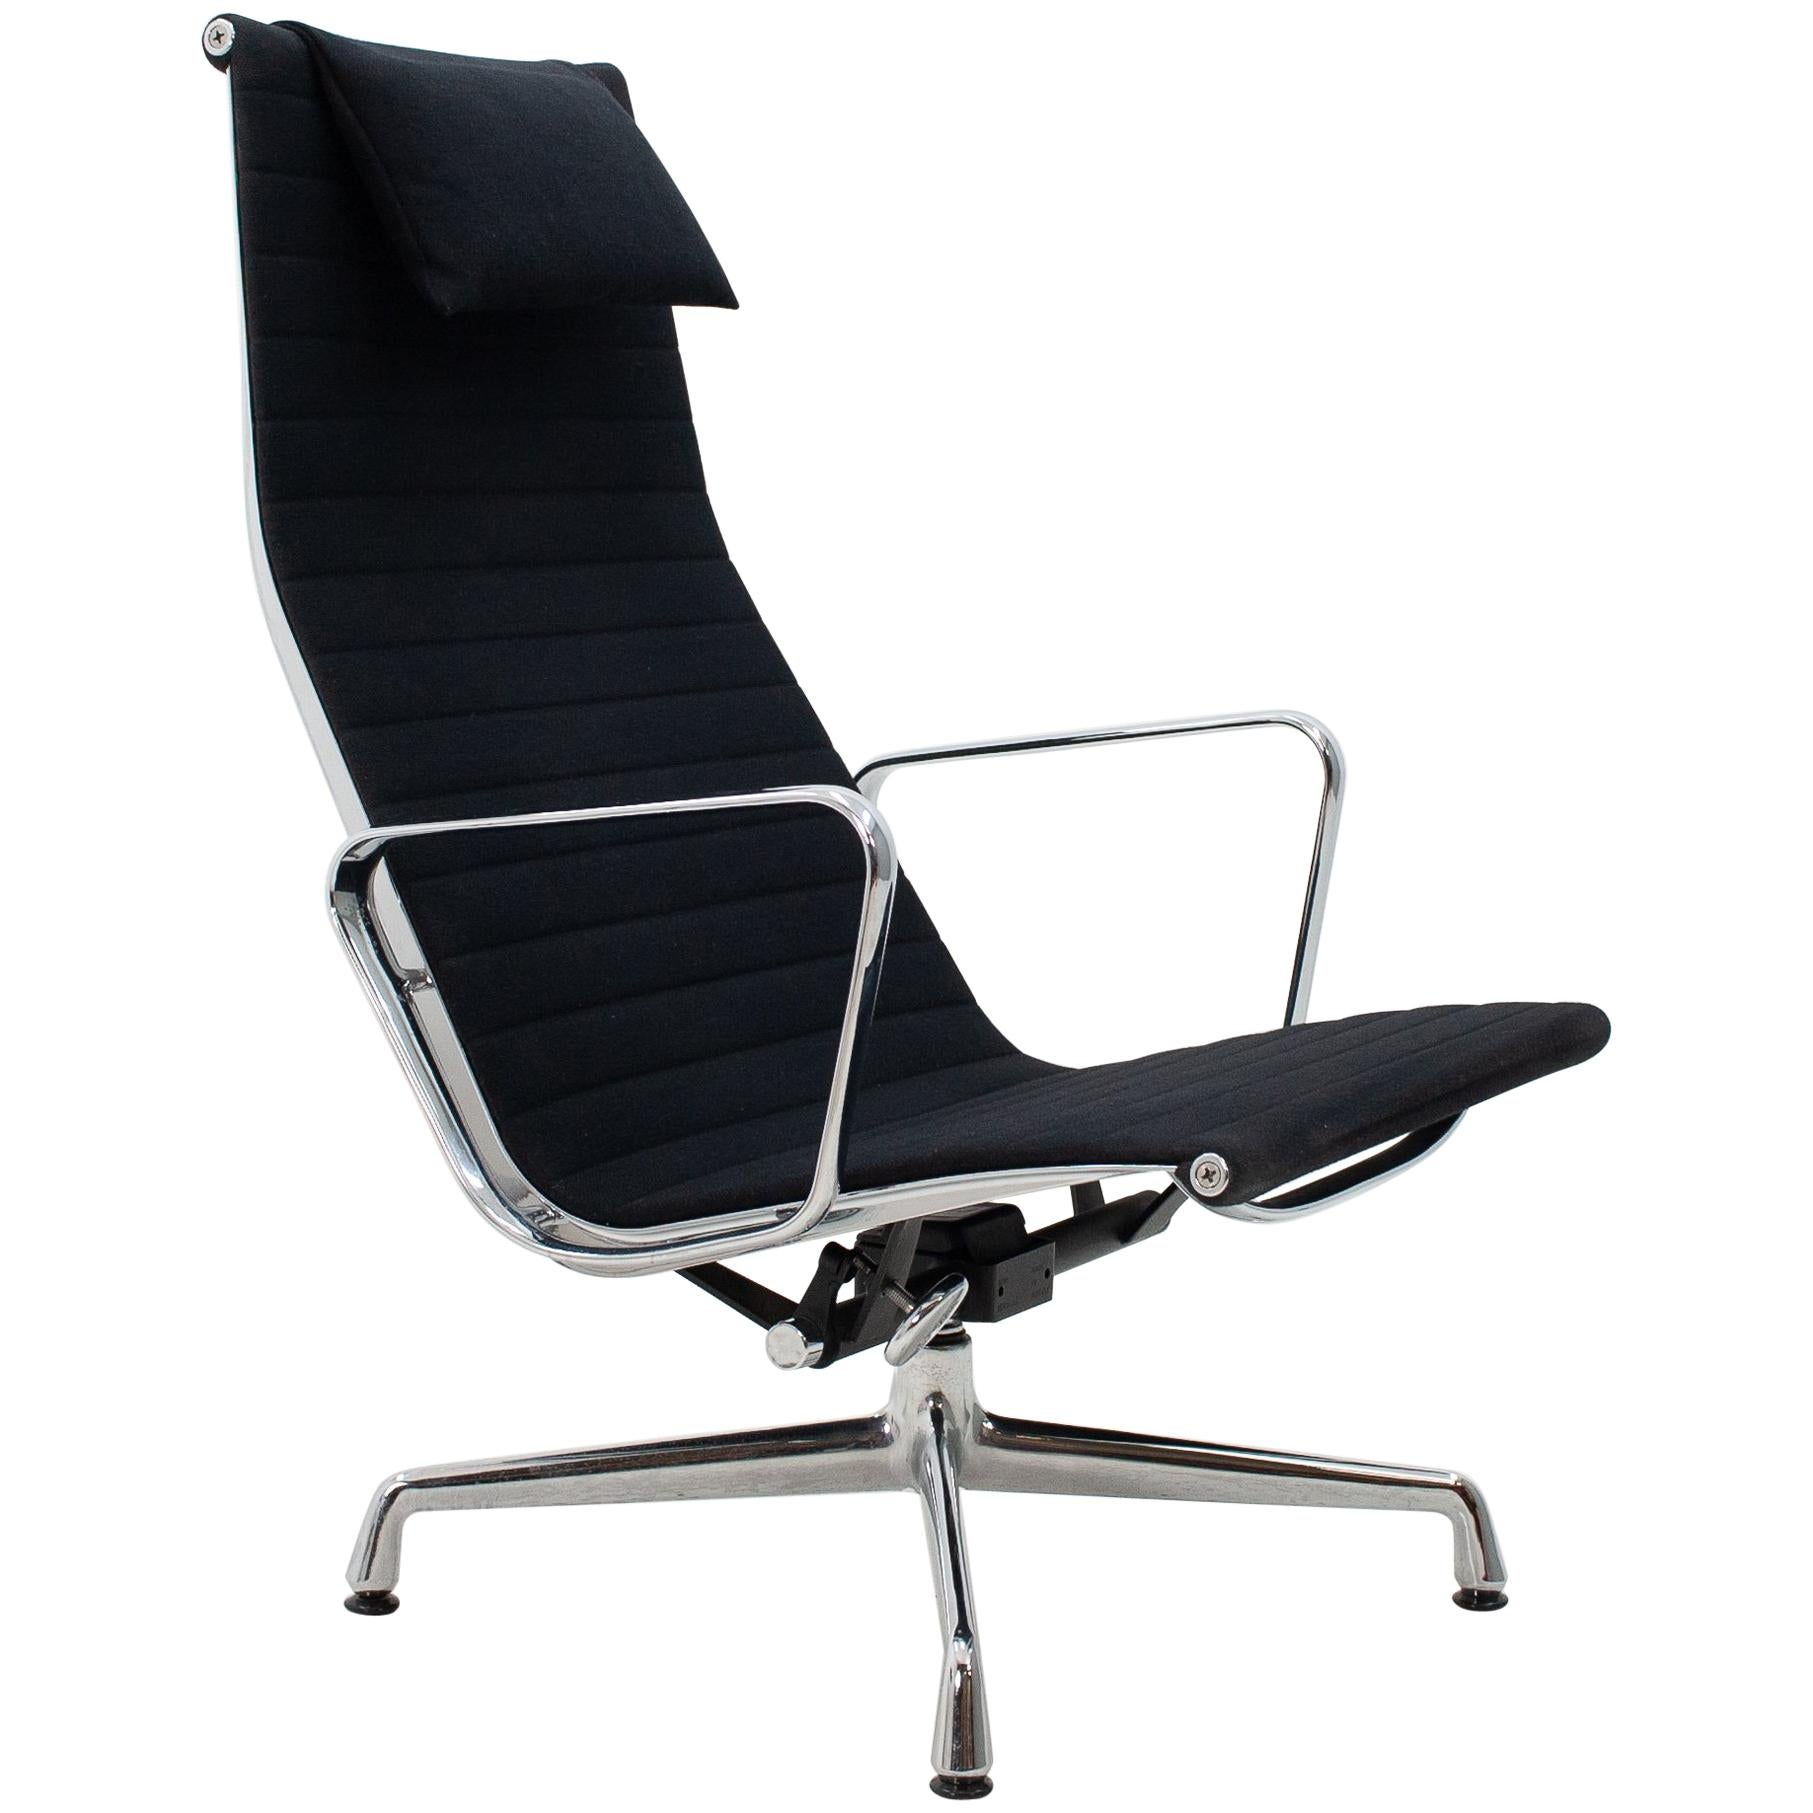 Vitra Eames Lounge Chair Black Vitra Eames Ea116 Rotating Swivel Lounge Chair In Black Fabric